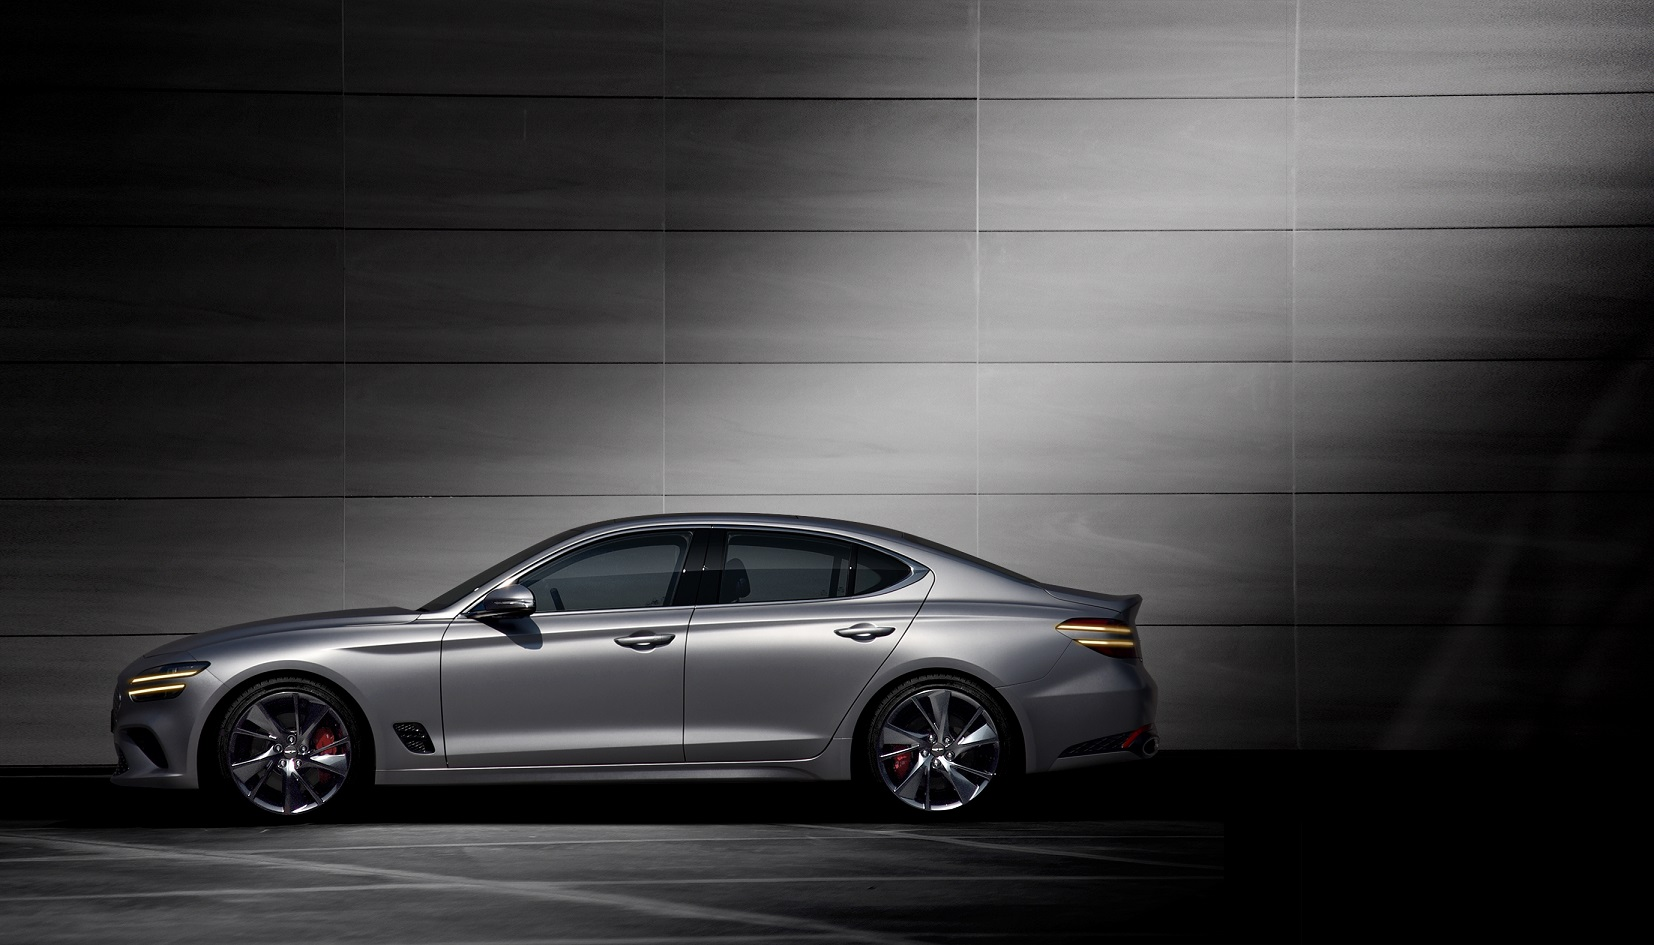 2022 Genesis G70 official images